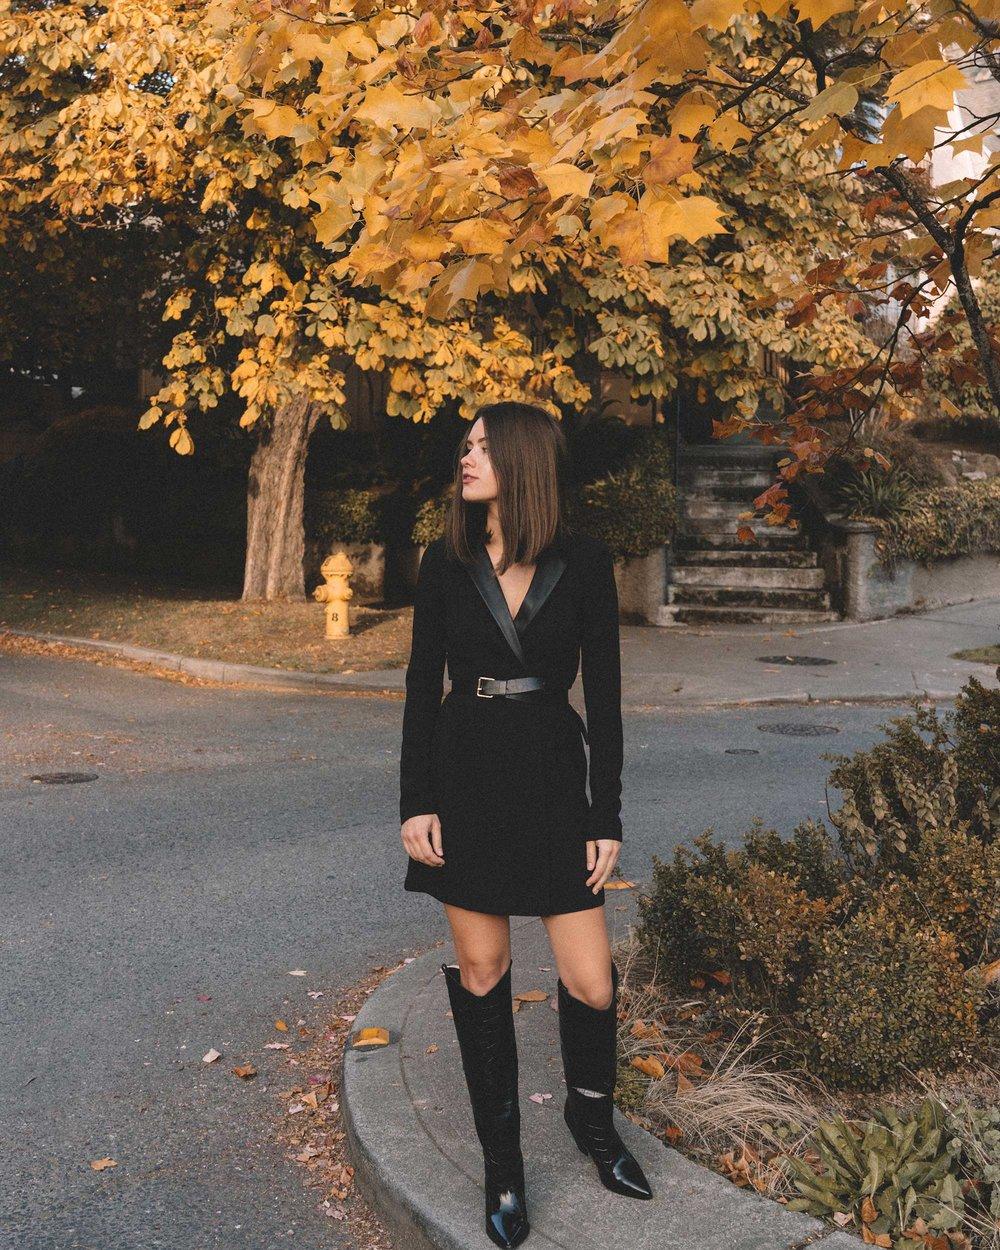 bcbgeneration blazer dress in black, Sigerson Morrison Karida Black Leather Knee High Boot, fall outfit 1.jpg